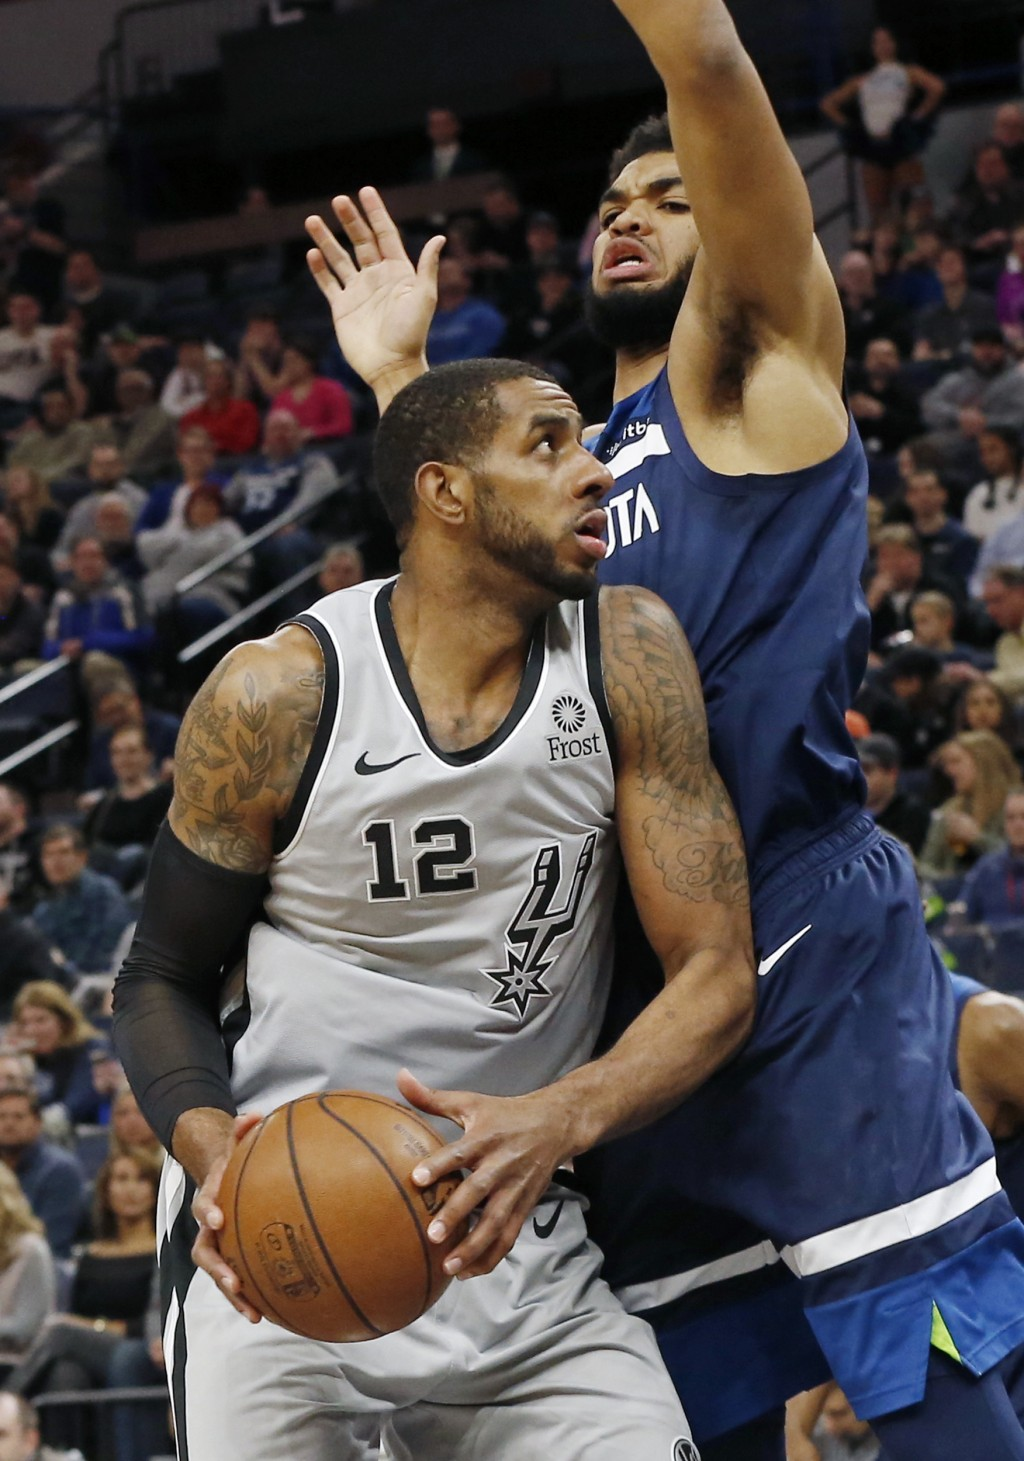 San Antonio Spurs' LaMarcus Aldridge, left, eyes the basket as Minnesota Timberwolves' Karl-Anthony Towns defends in the first half of an NBA basketba